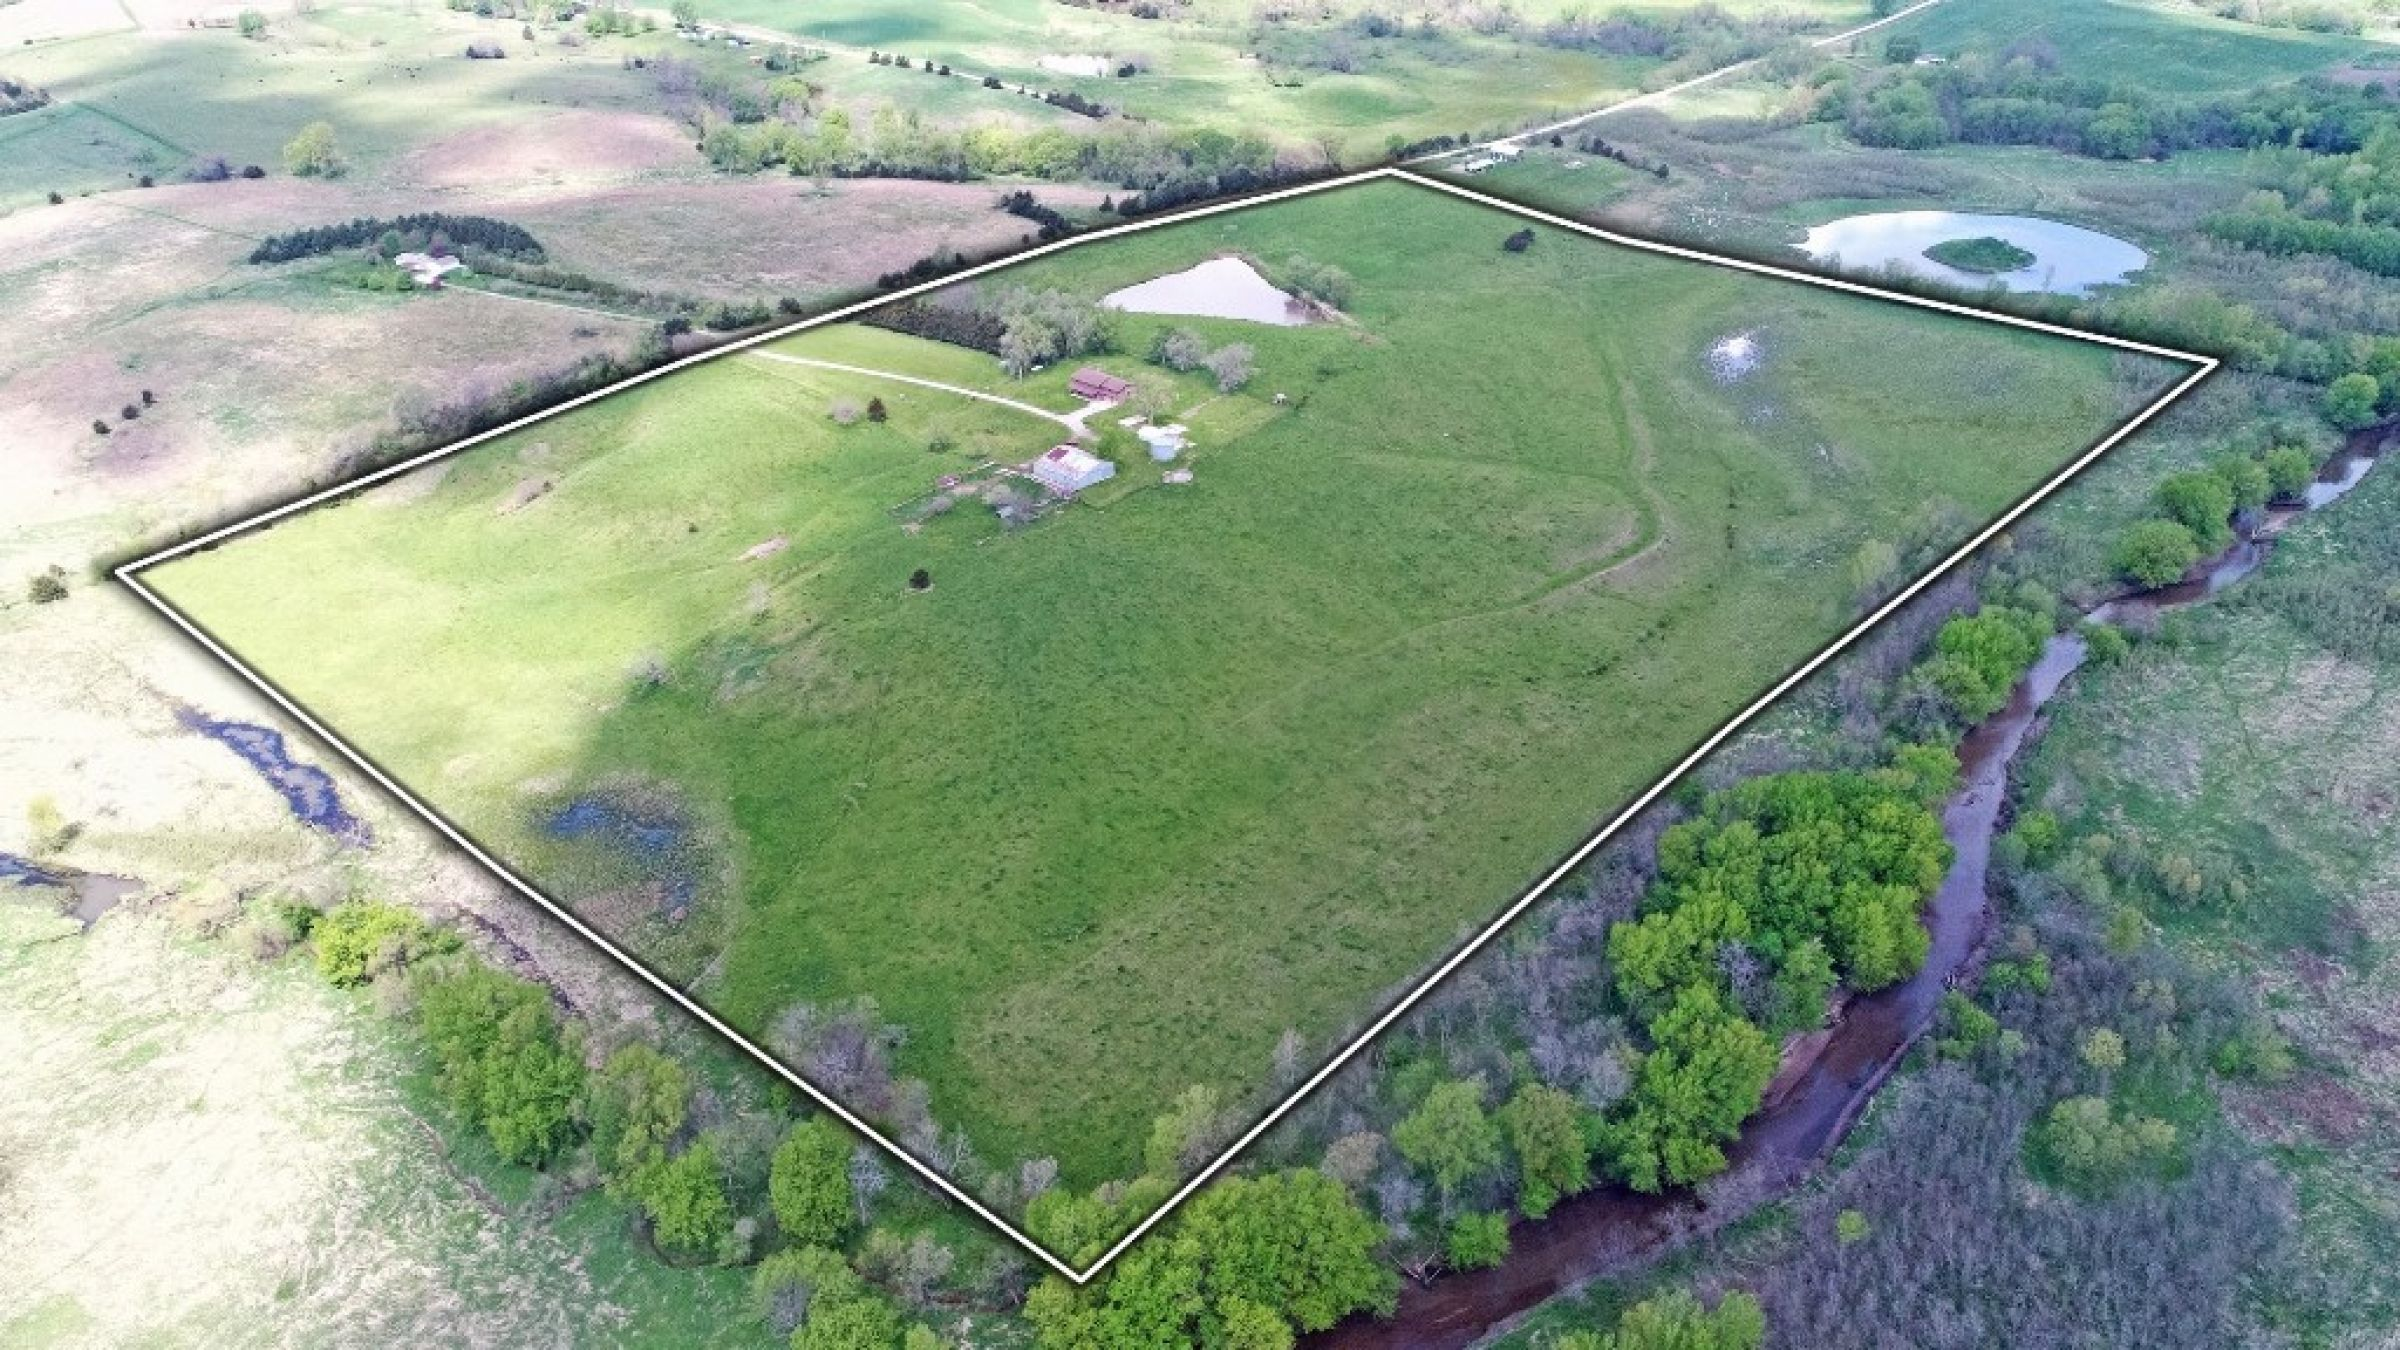 residential-lucas-county-iowa-60-acres-listing-number-14939-2-2020-05-07-163215.jpg